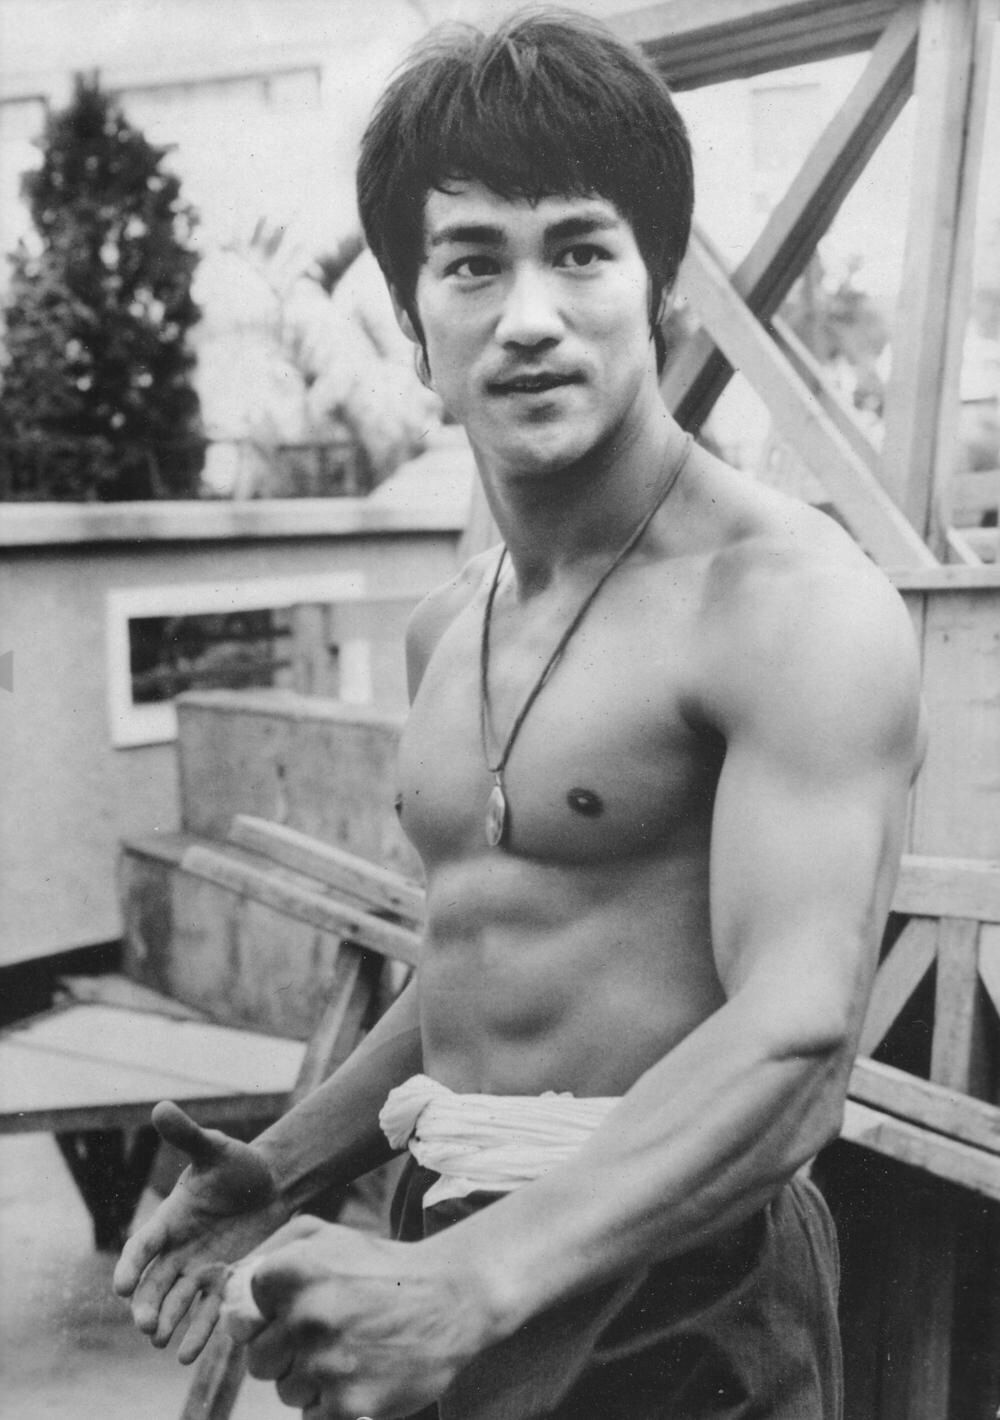 Bruce Lee My Hubs Loves Bruce Lee And His Movies I Always Thought